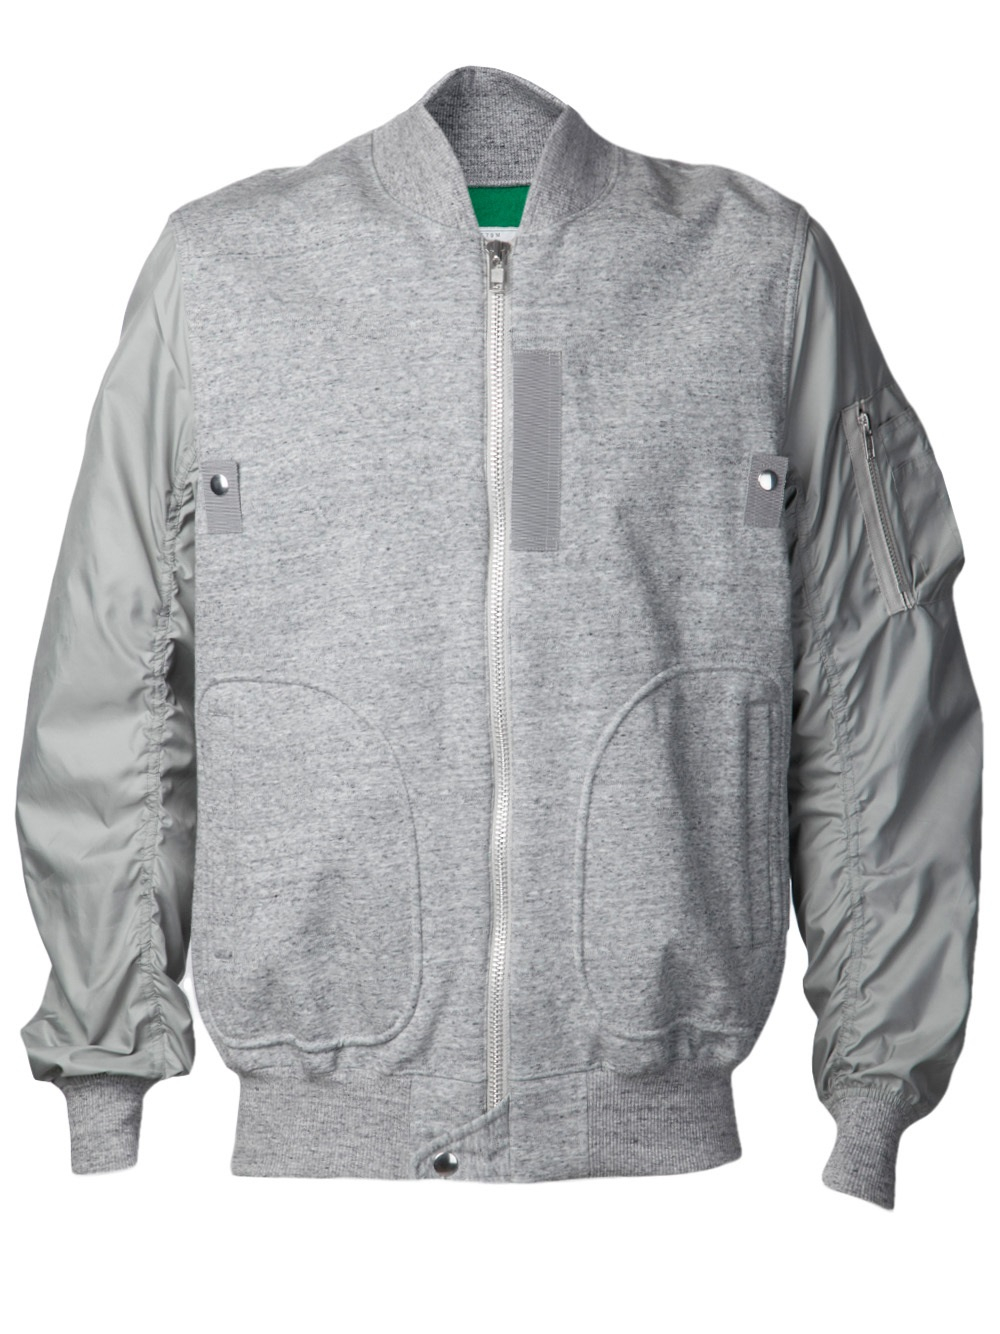 Lyst Sacai Contrast Sleeve Jacket In Gray For Men